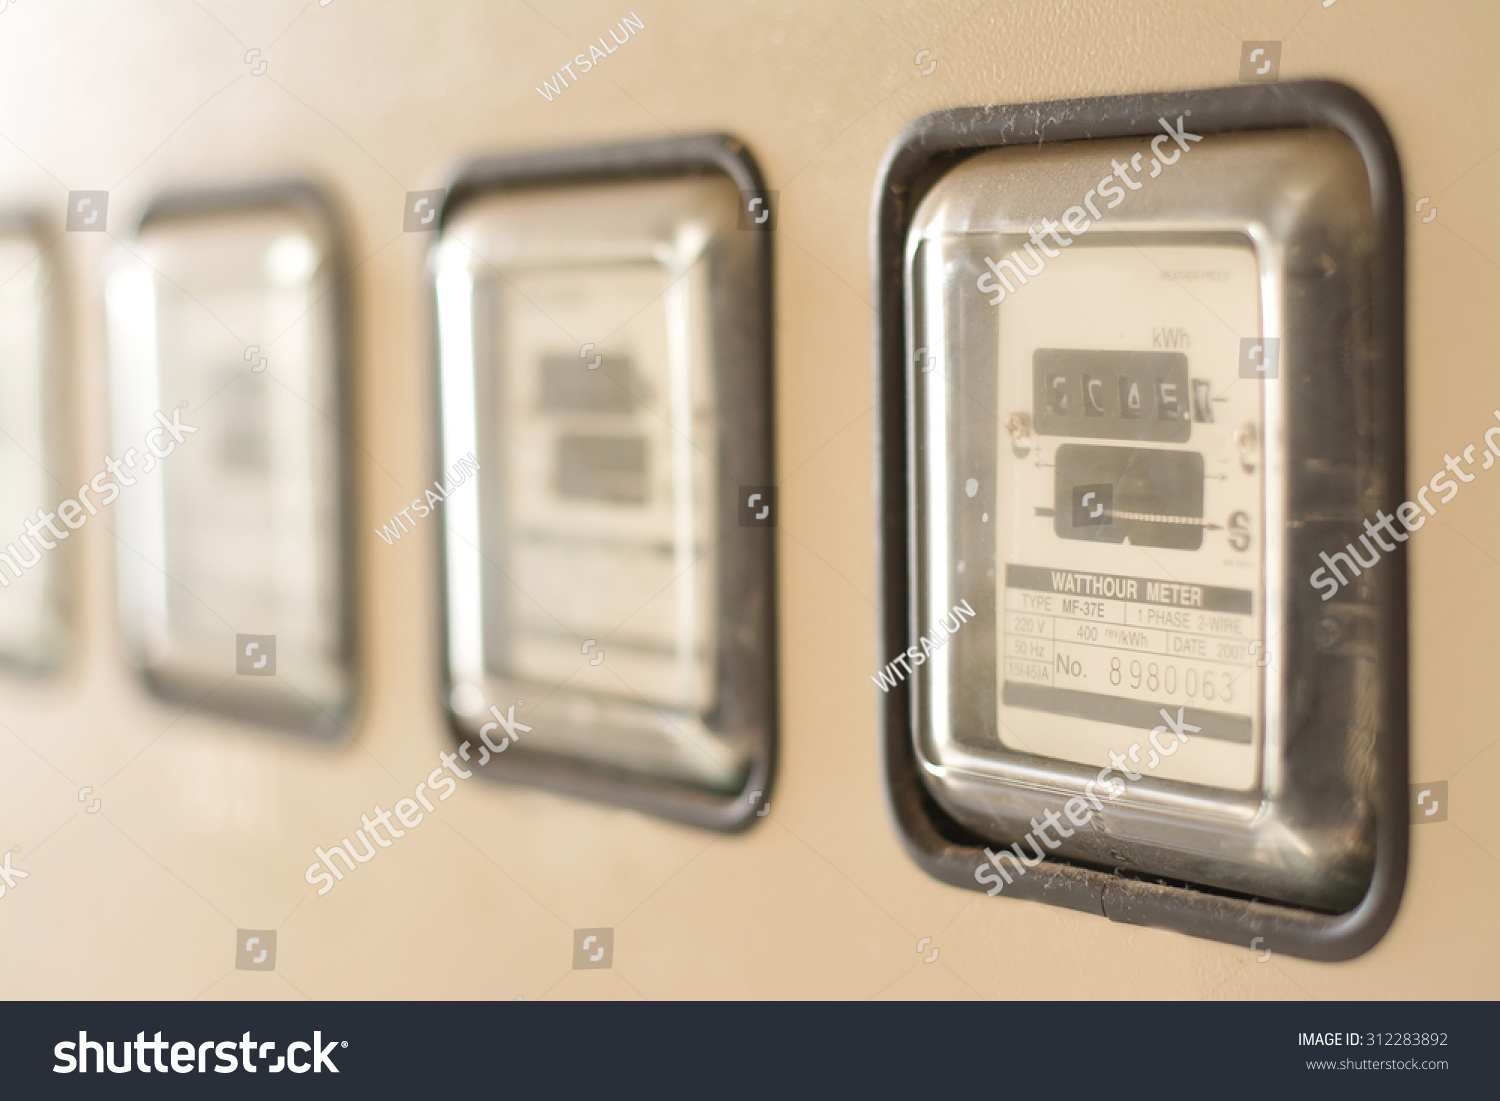 watt hour electric meter measurement tool stock photo. Black Bedroom Furniture Sets. Home Design Ideas